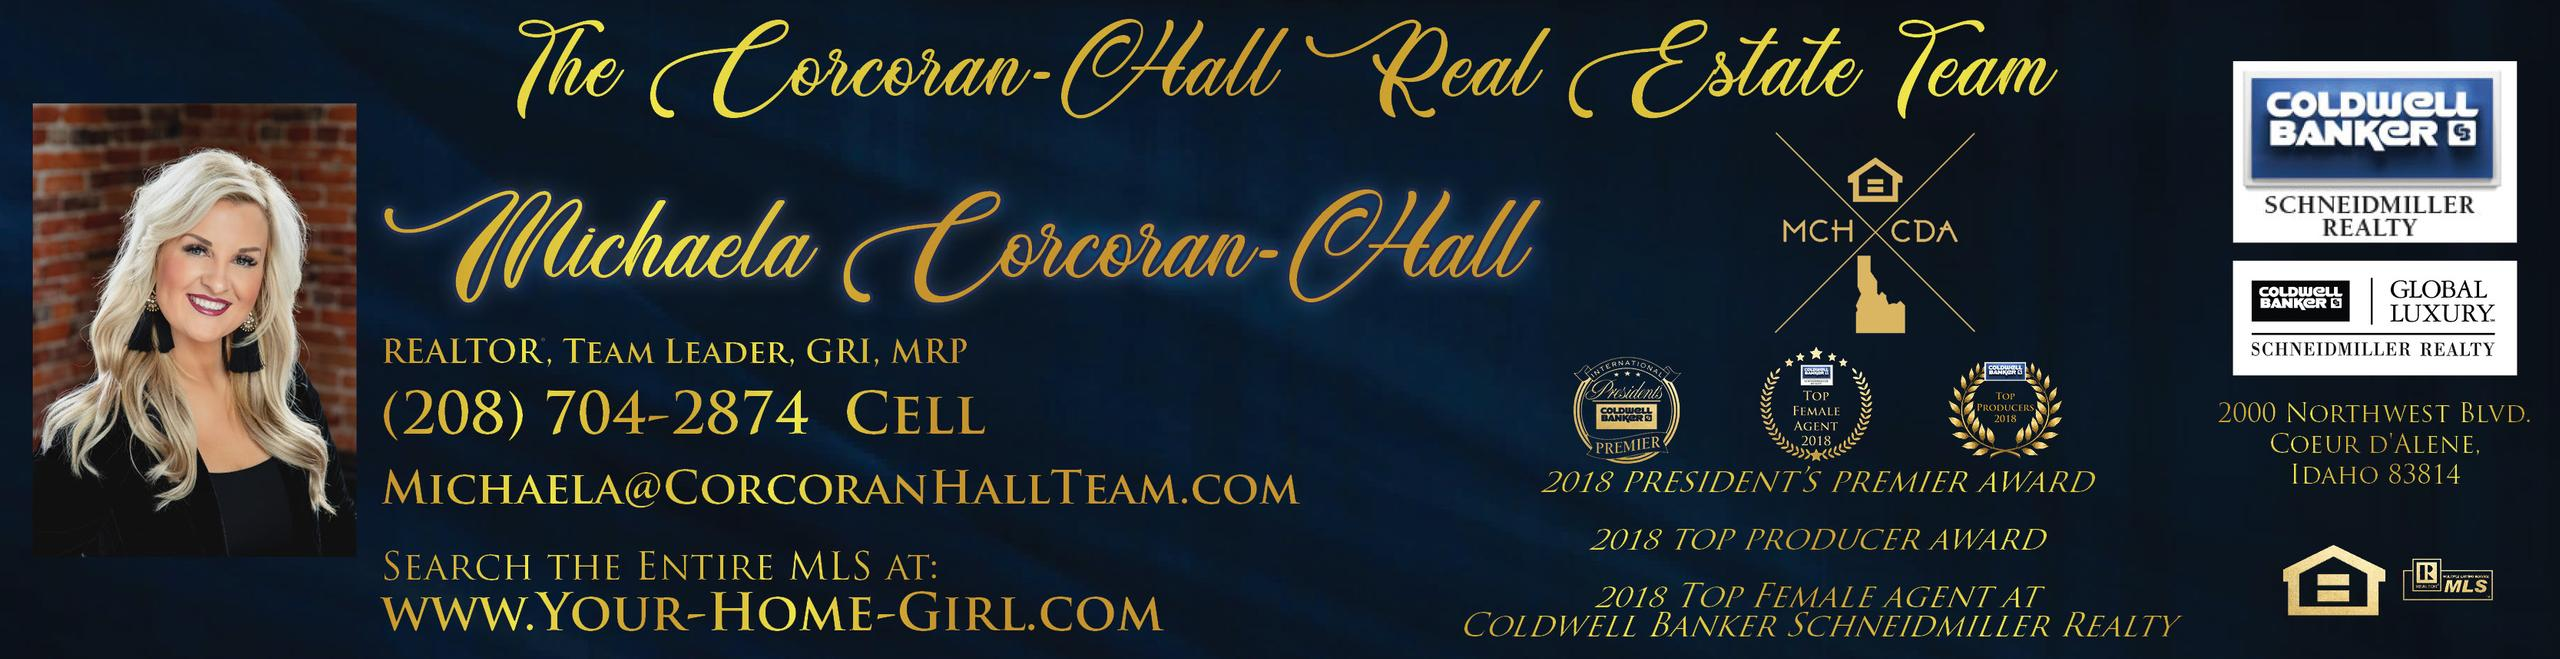 What Clients Are Saying About The Corcoran-Hall Real Estate Team